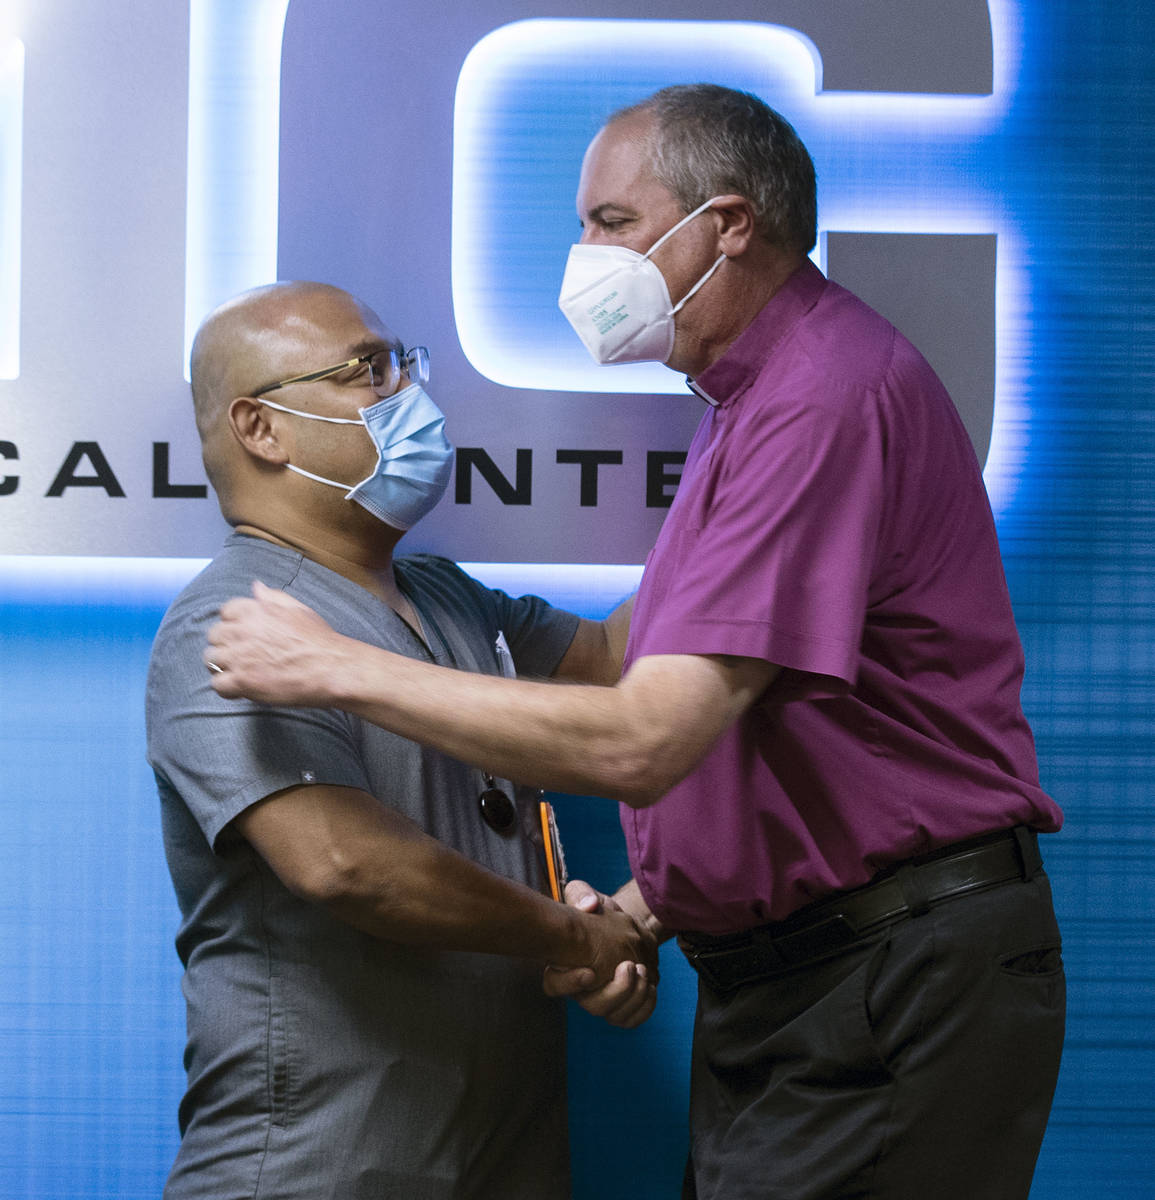 The Rev. Russ Smethers, right, a local pastor who was stabbed 21 times on March 8, shakes hands ...